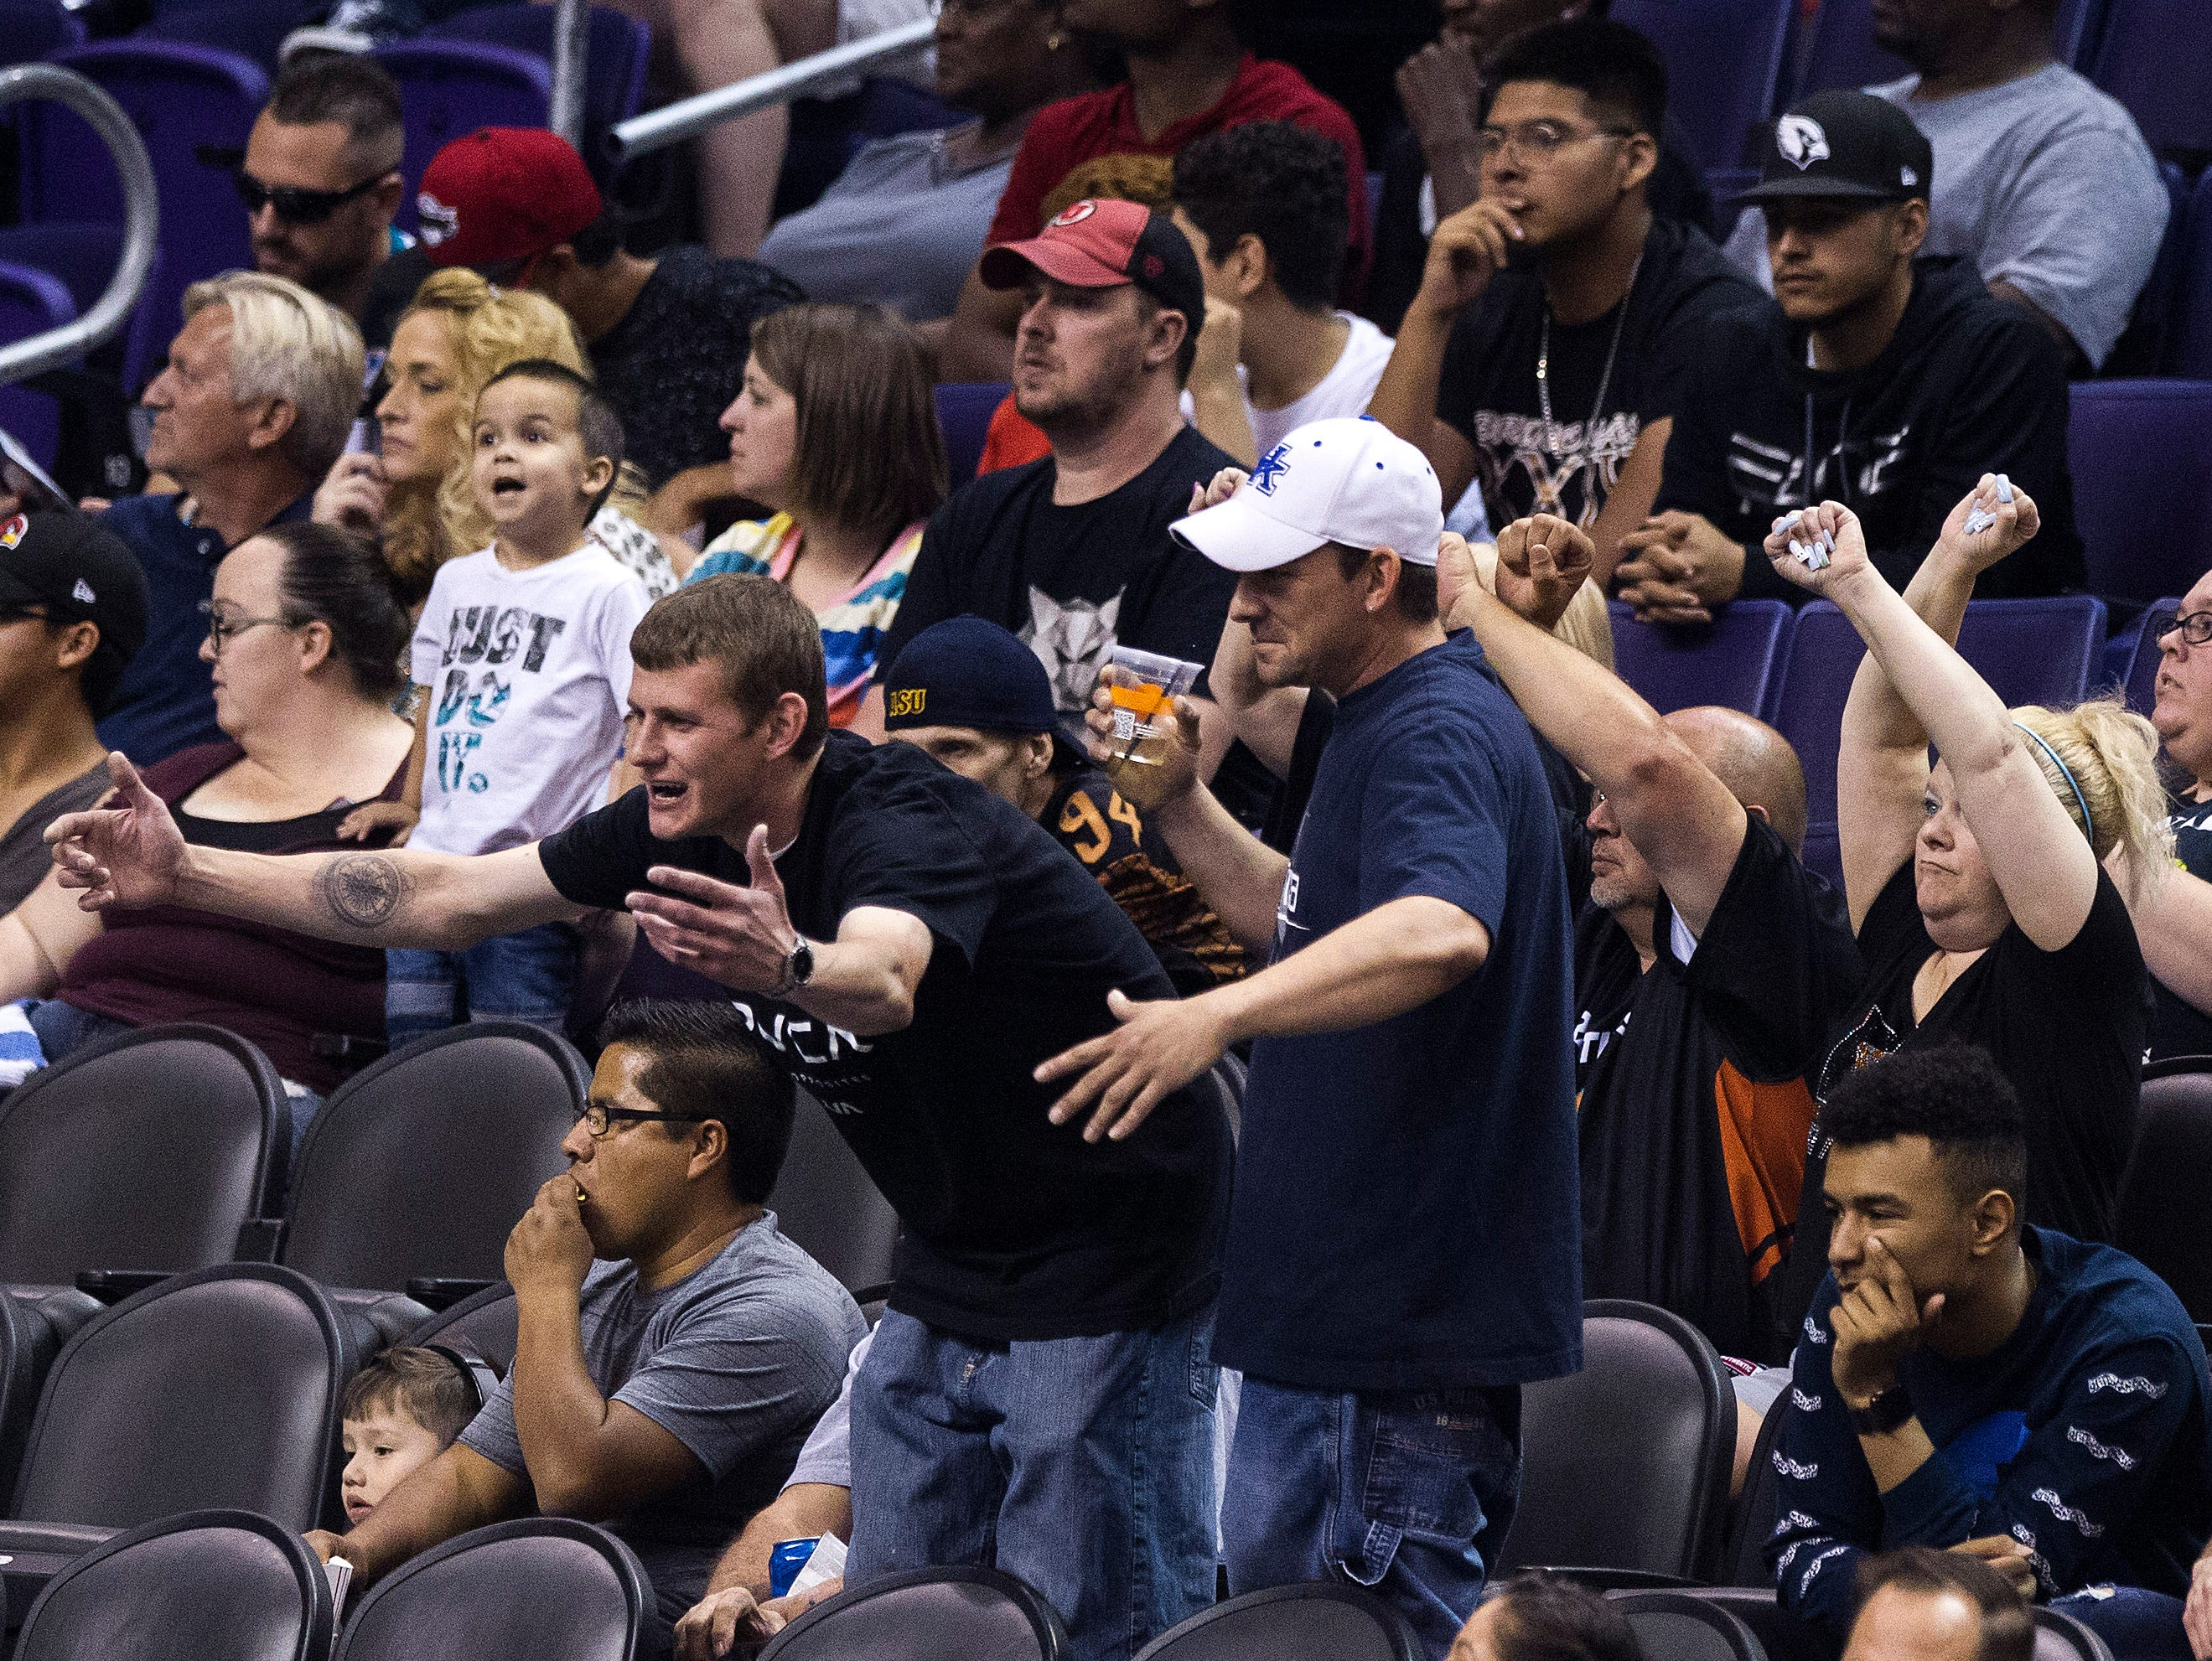 Arizona Rattlers fans razz the San Diego Strike Force players as they get beat handily in the first half by the Rattlers at Talking Stick Resort Arena in Phoenix Friday, April. 6, 2019.